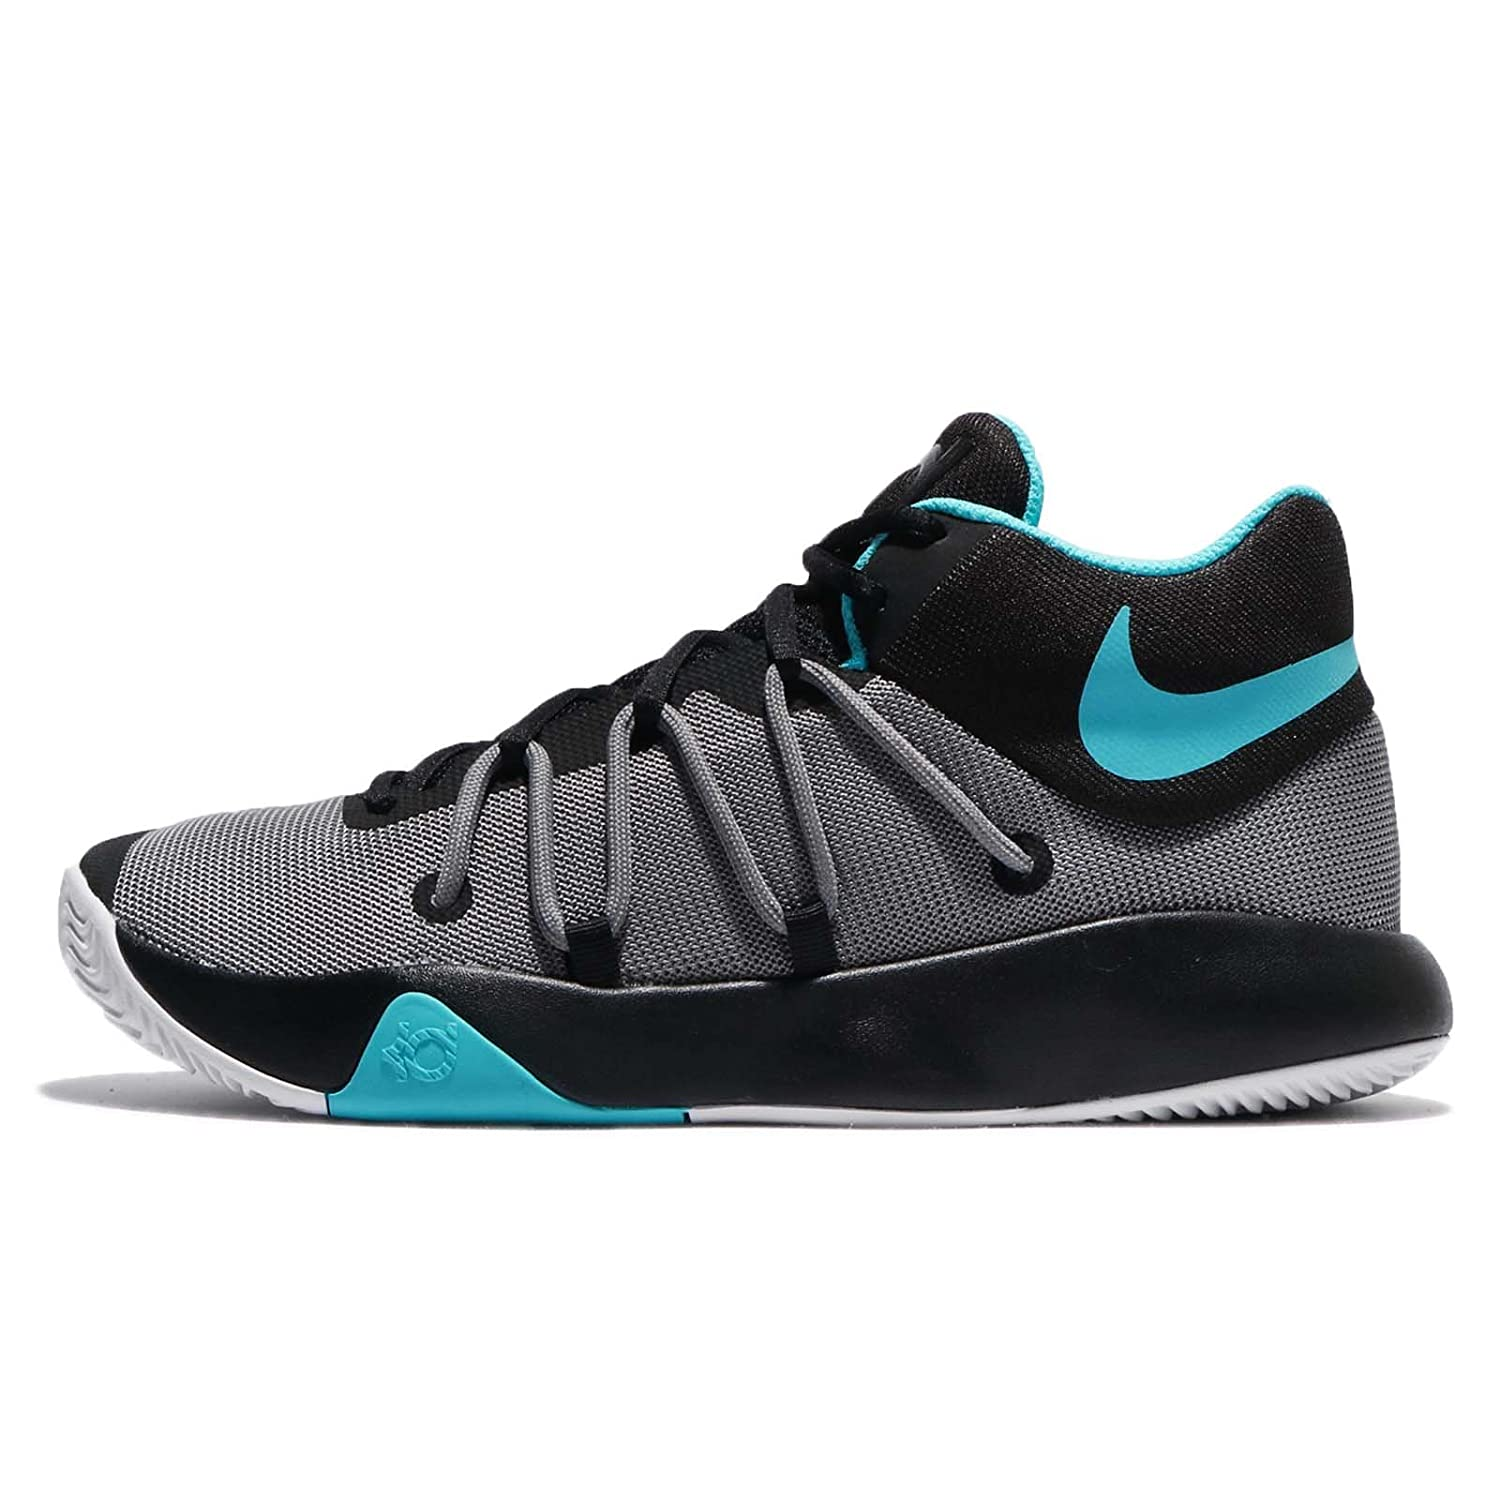 a5c94d38c6c7 Amazon.com  NIKE KD Trey 5 V EP Mens Basketball Shoes 921540-004 Size 10  D(M) US  Health   Personal Care